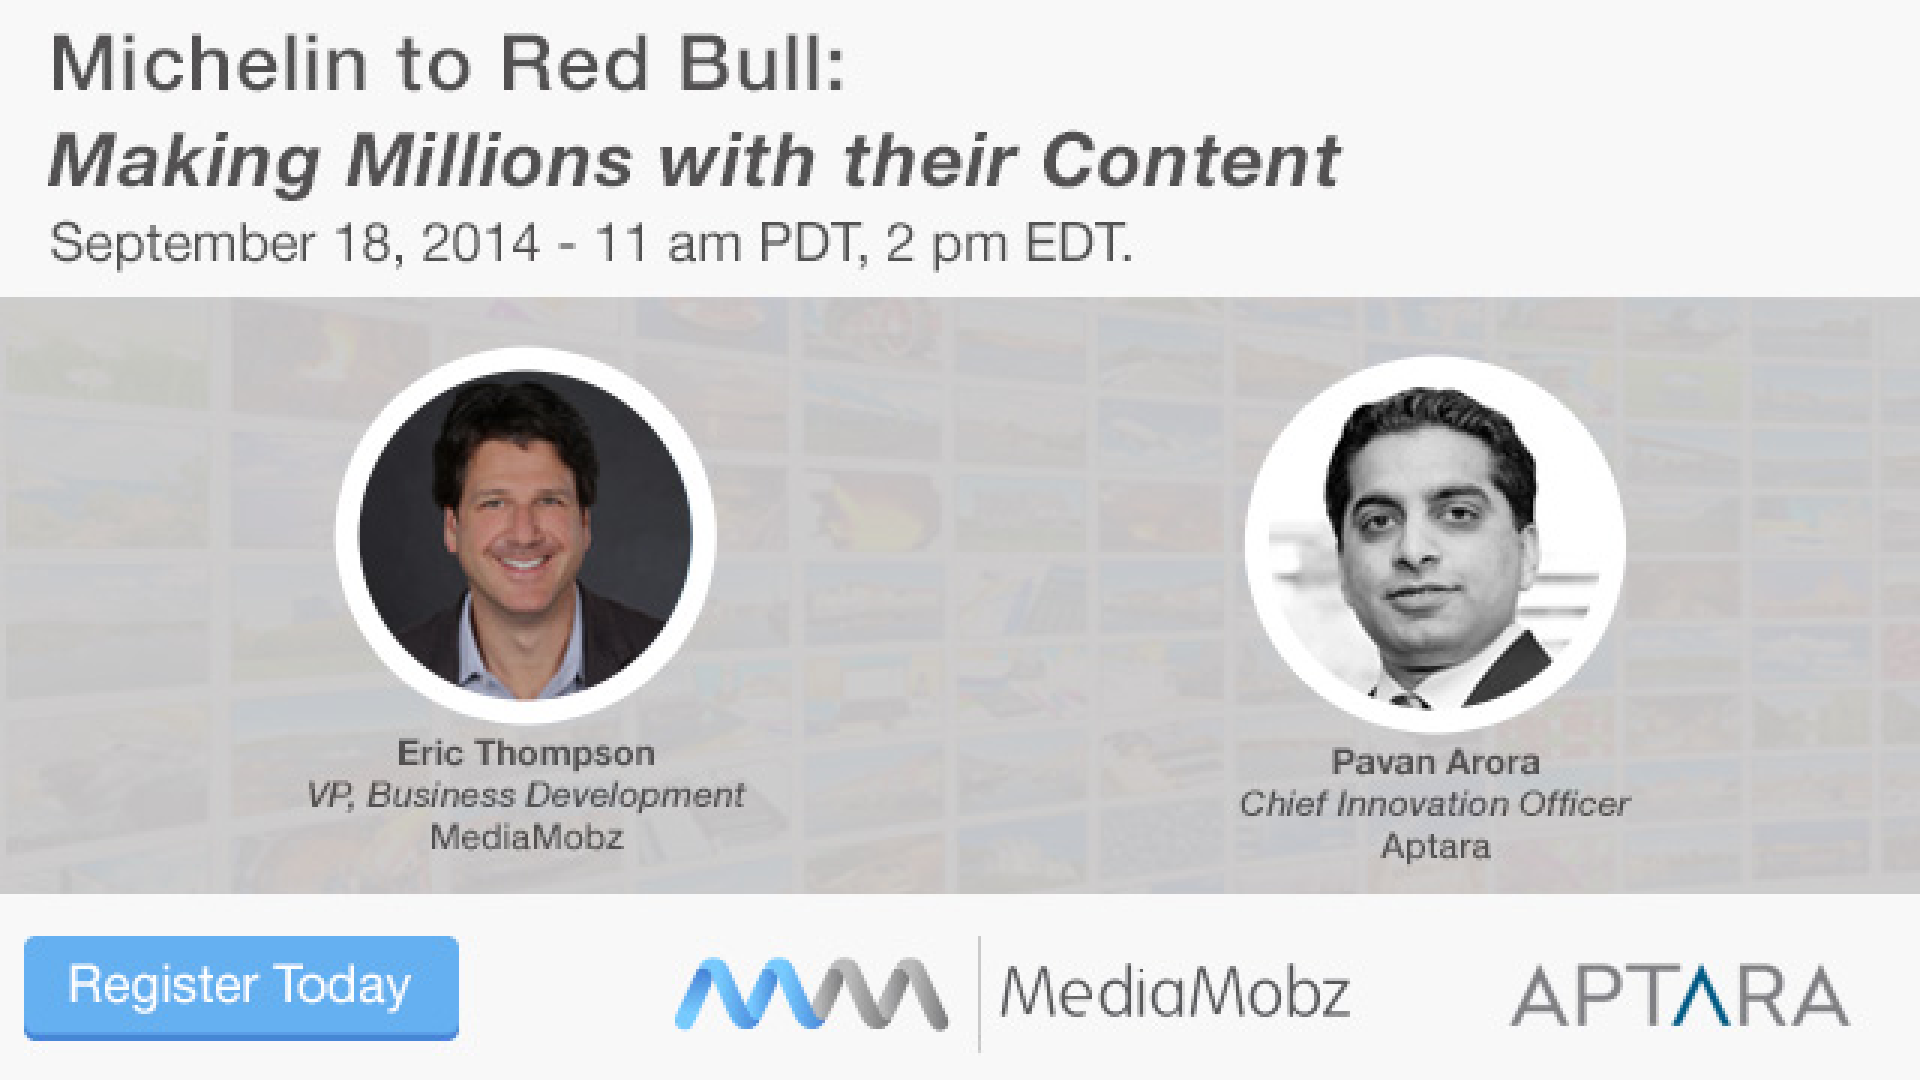 Learn How Companies like Michelin, Red Bull & Domino's Execute Content Strategies That Made Millions in Revenue.